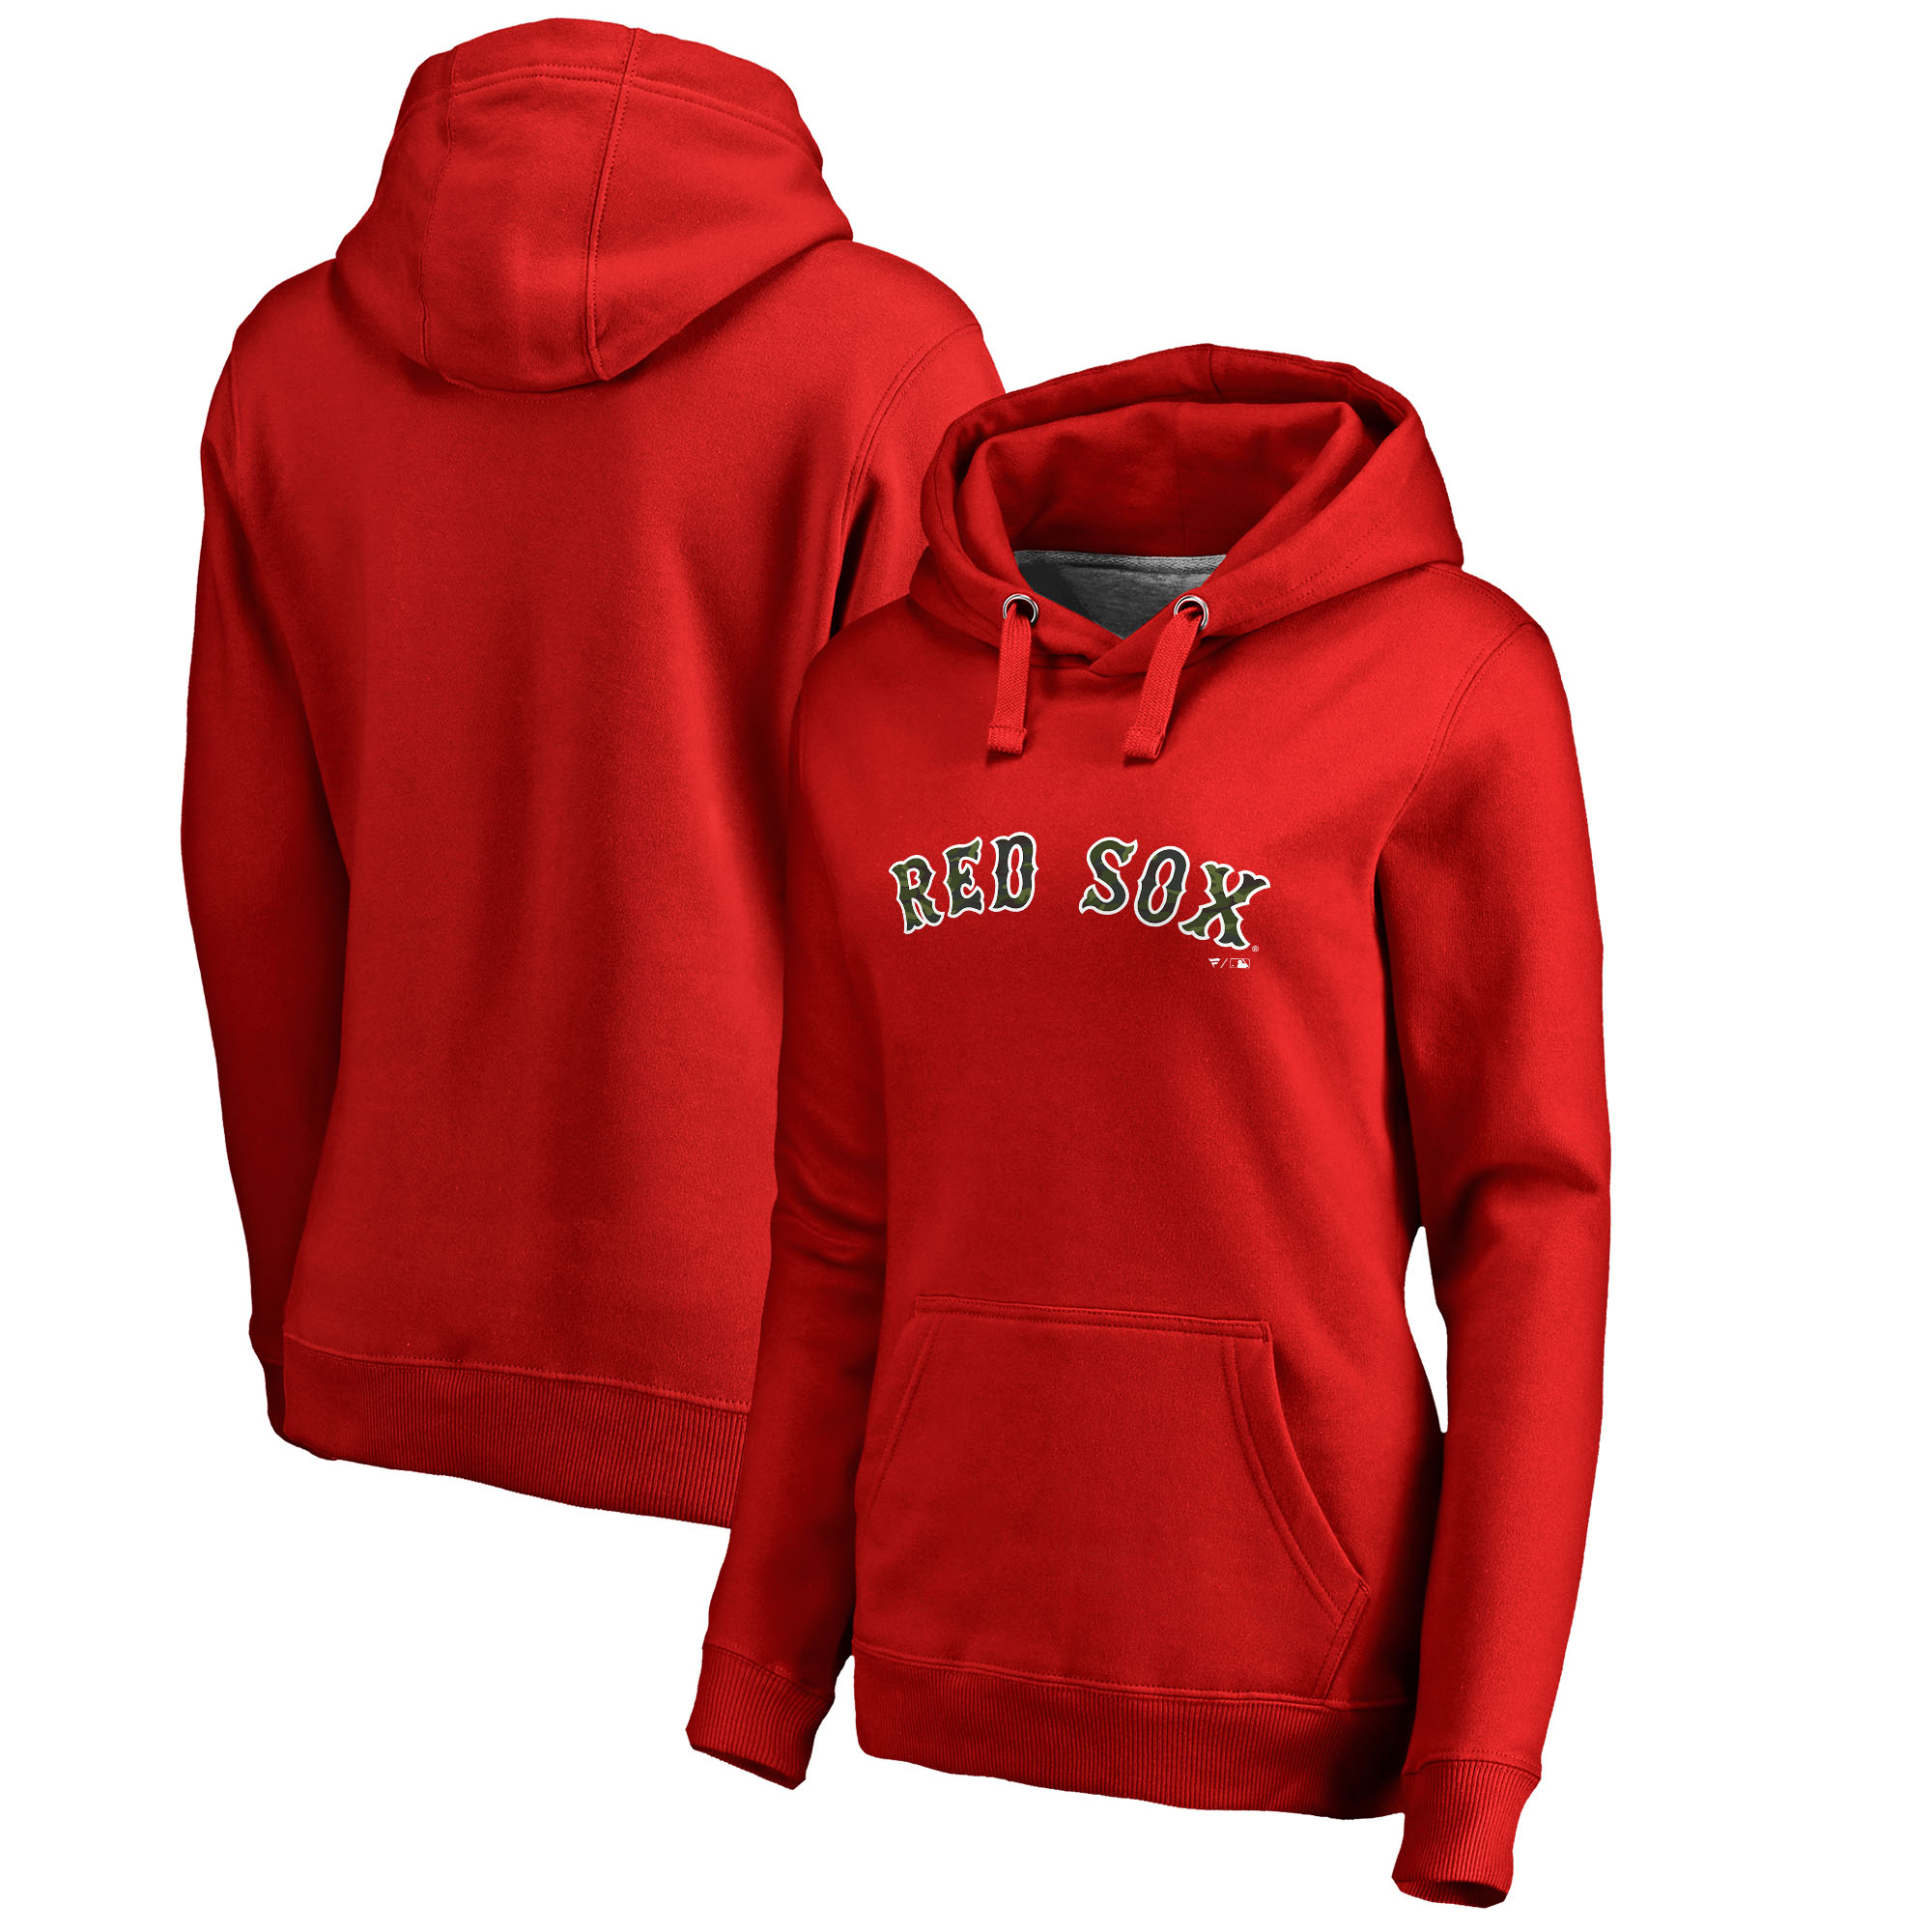 Boston Red Sox Fanatics Branded Women's Memorial Wordmark Pullover Hoodie - Red